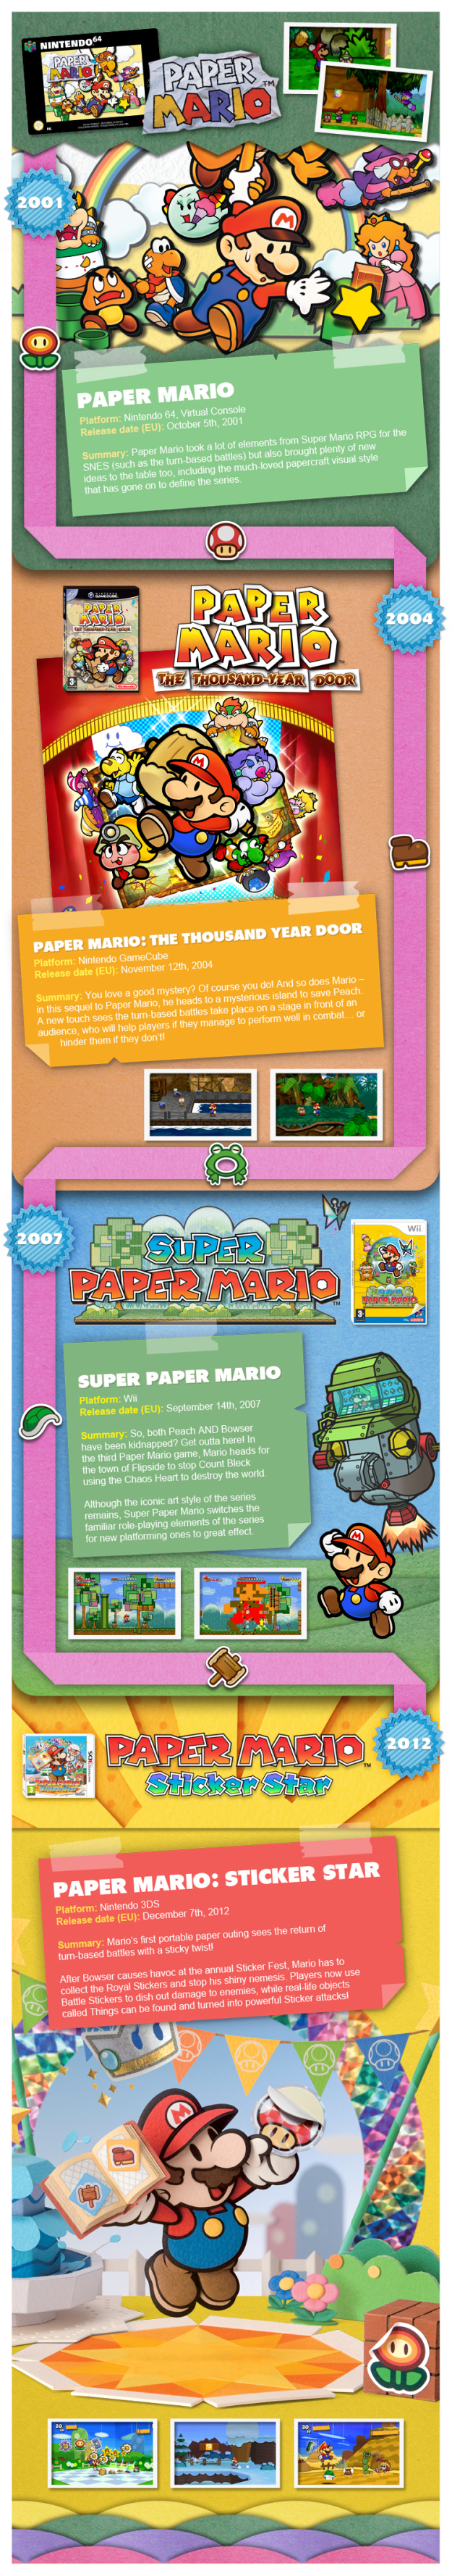 paper_mario_time_line